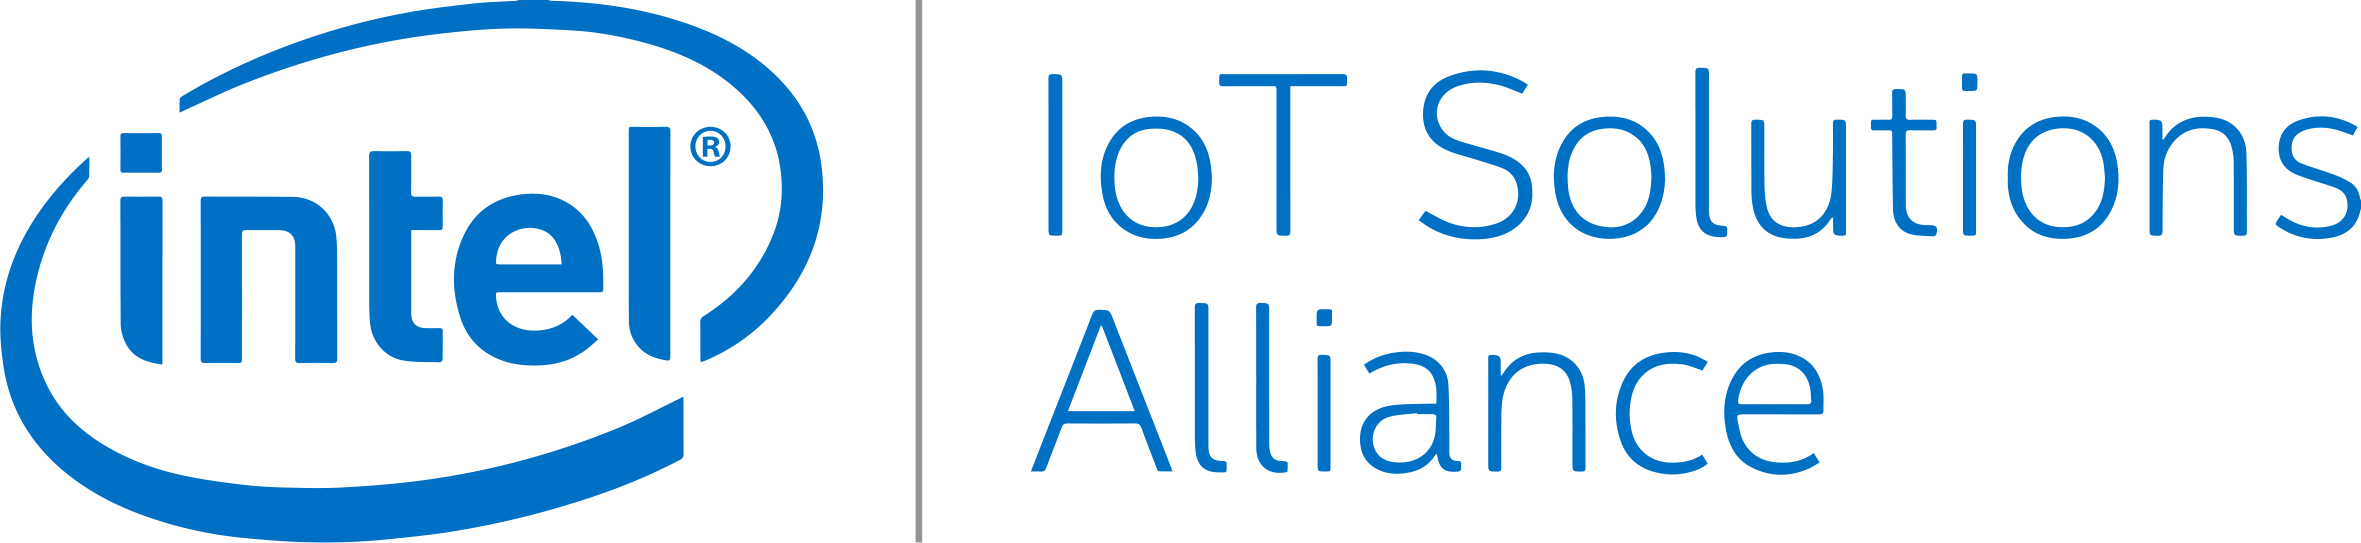 Intel IoT Solutions Aliance Logo Color